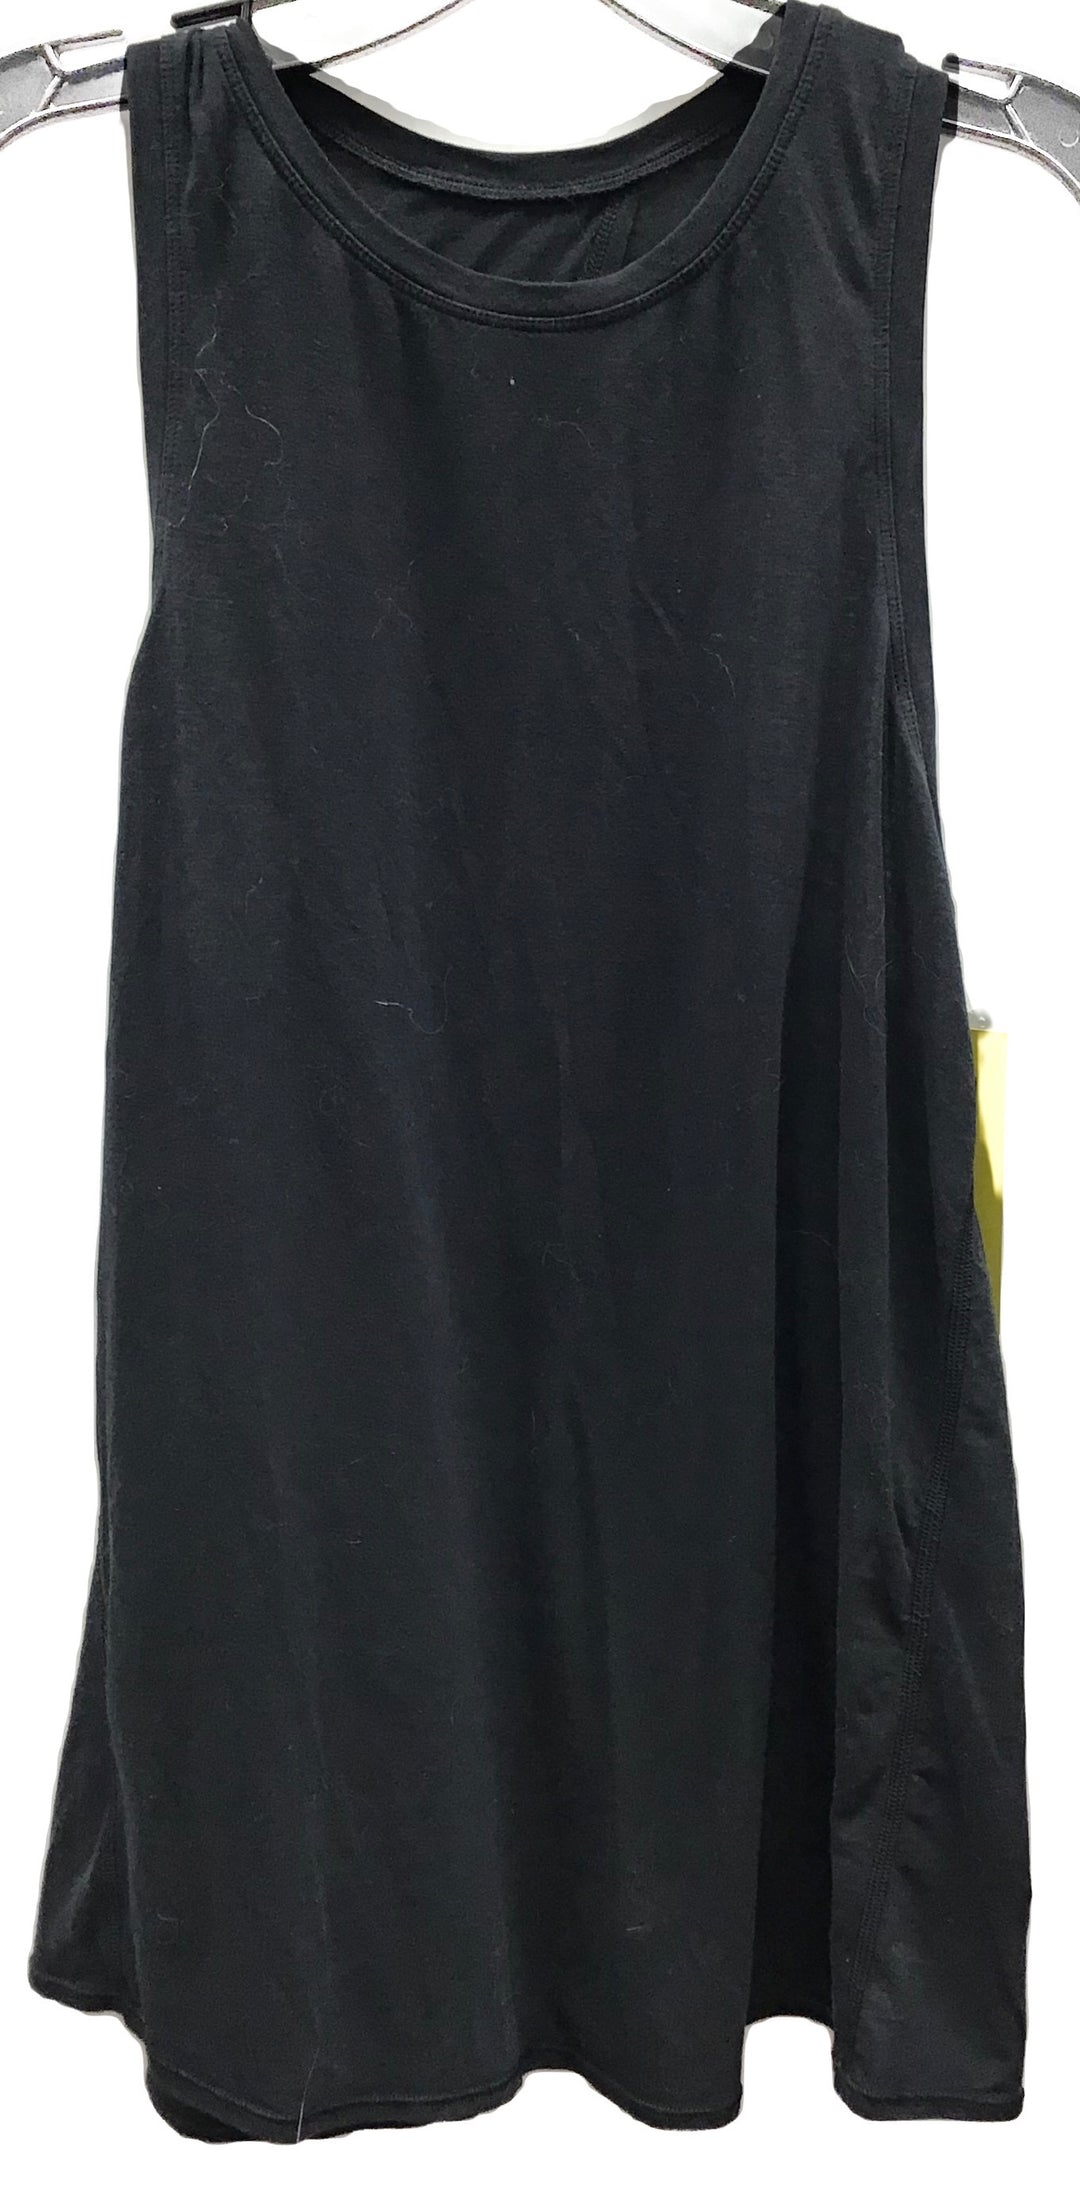 Primary Photo - BRAND: LULULEMON <BR>STYLE: ATHLETIC TANK TOP <BR>COLOR: BLACK <BR>SIZE: 2 <BR>SKU: 213-21394-40541